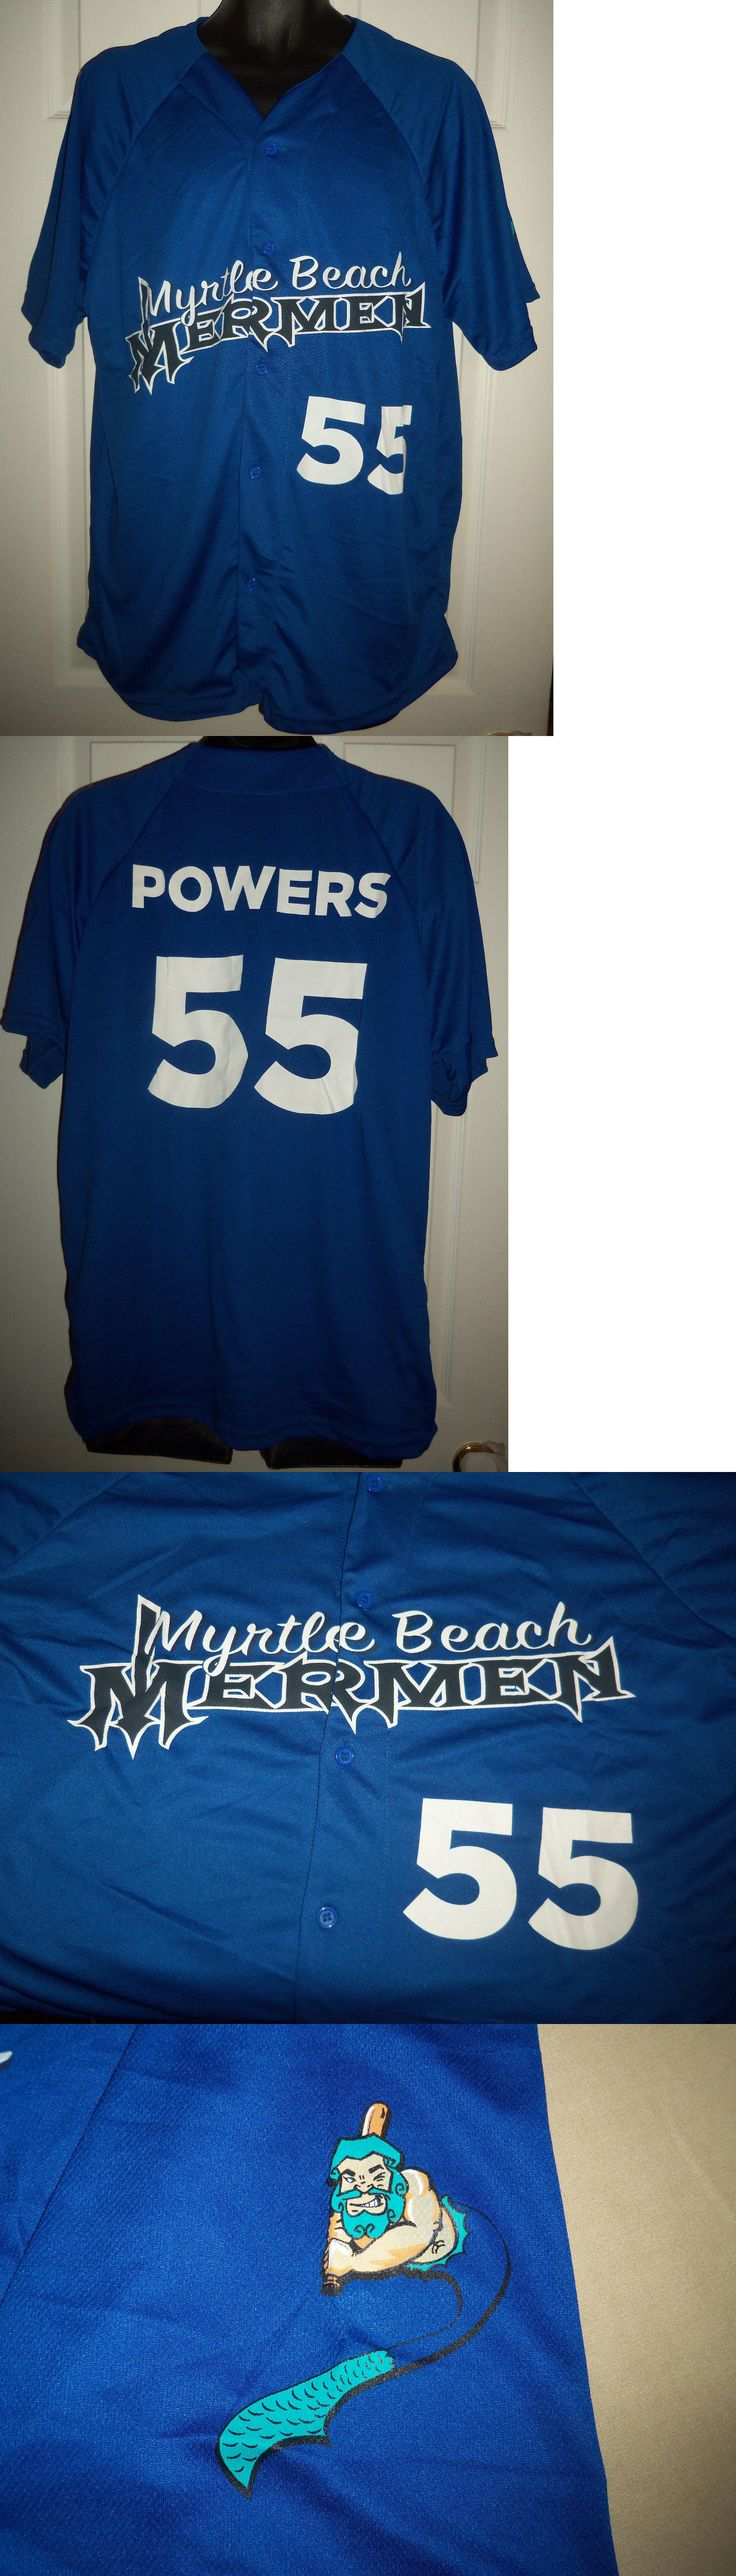 Baseball-Minors 24441: Myrtle Beach Mermen Kenny Powers #55 Xl Jersey Sga Pelicans Eastbound And Down Nip -> BUY IT NOW ONLY: $60 on eBay!